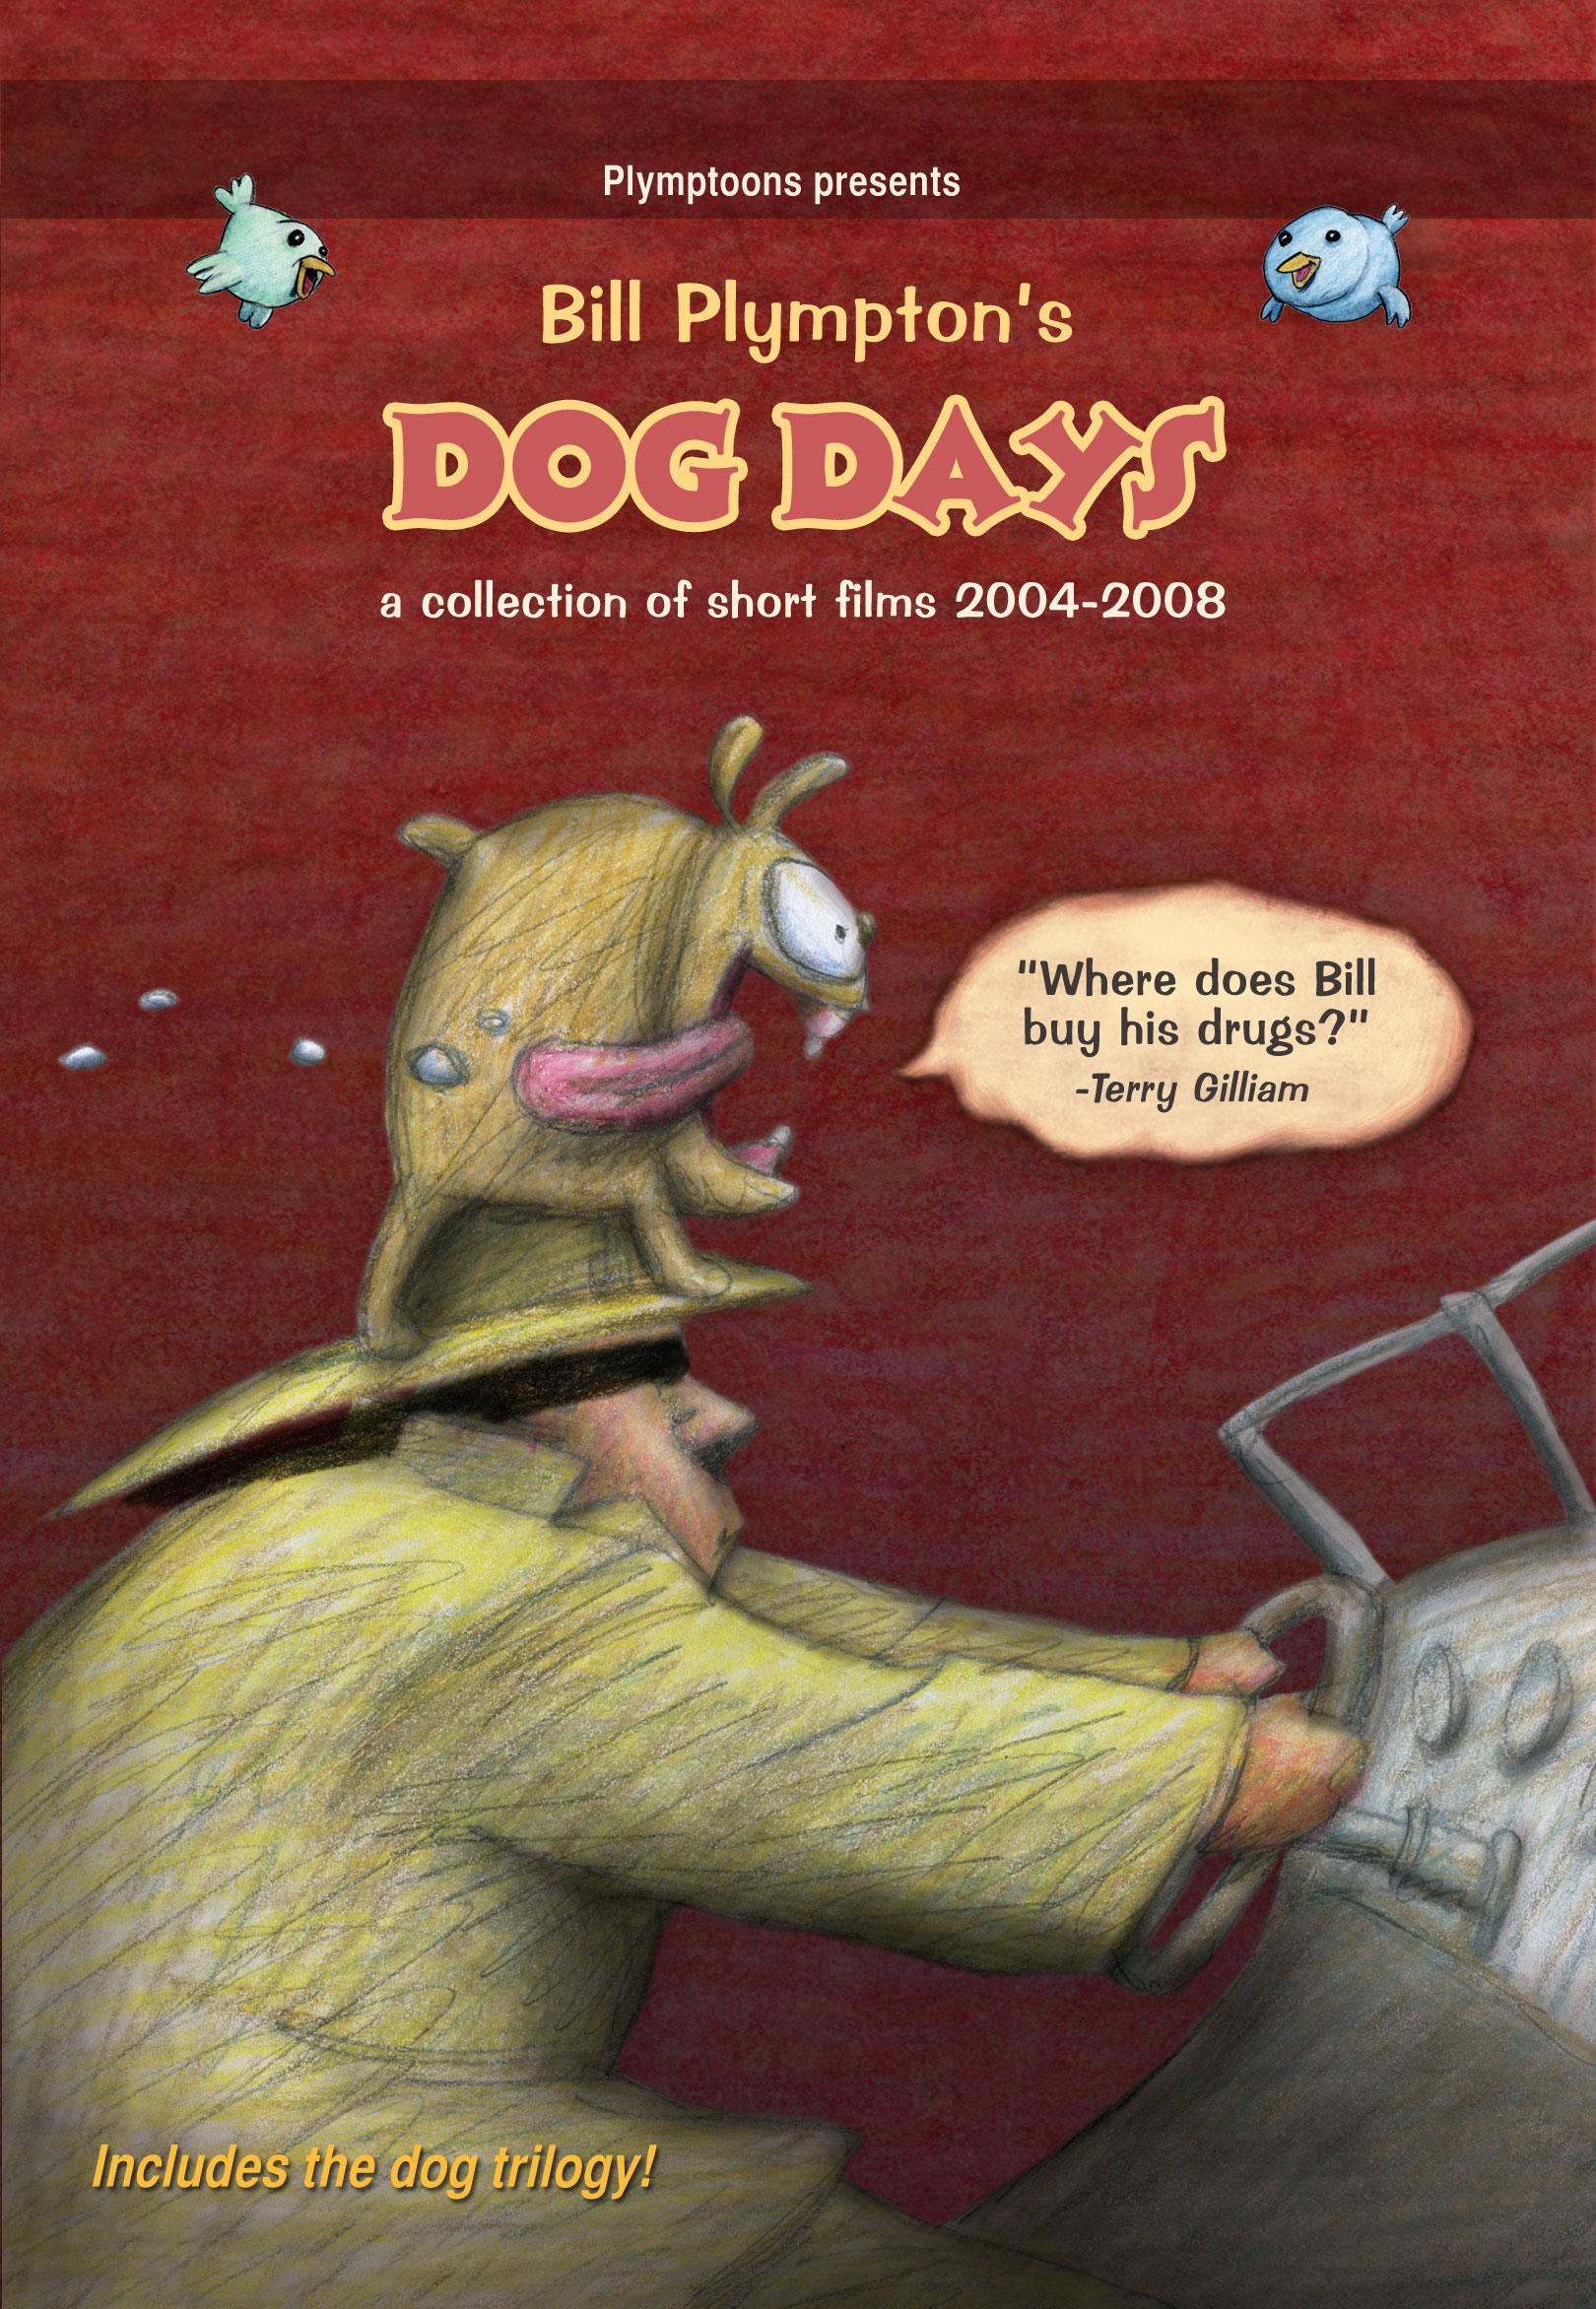 Guard dog & guide dog: two animated shorts by bill plympton.